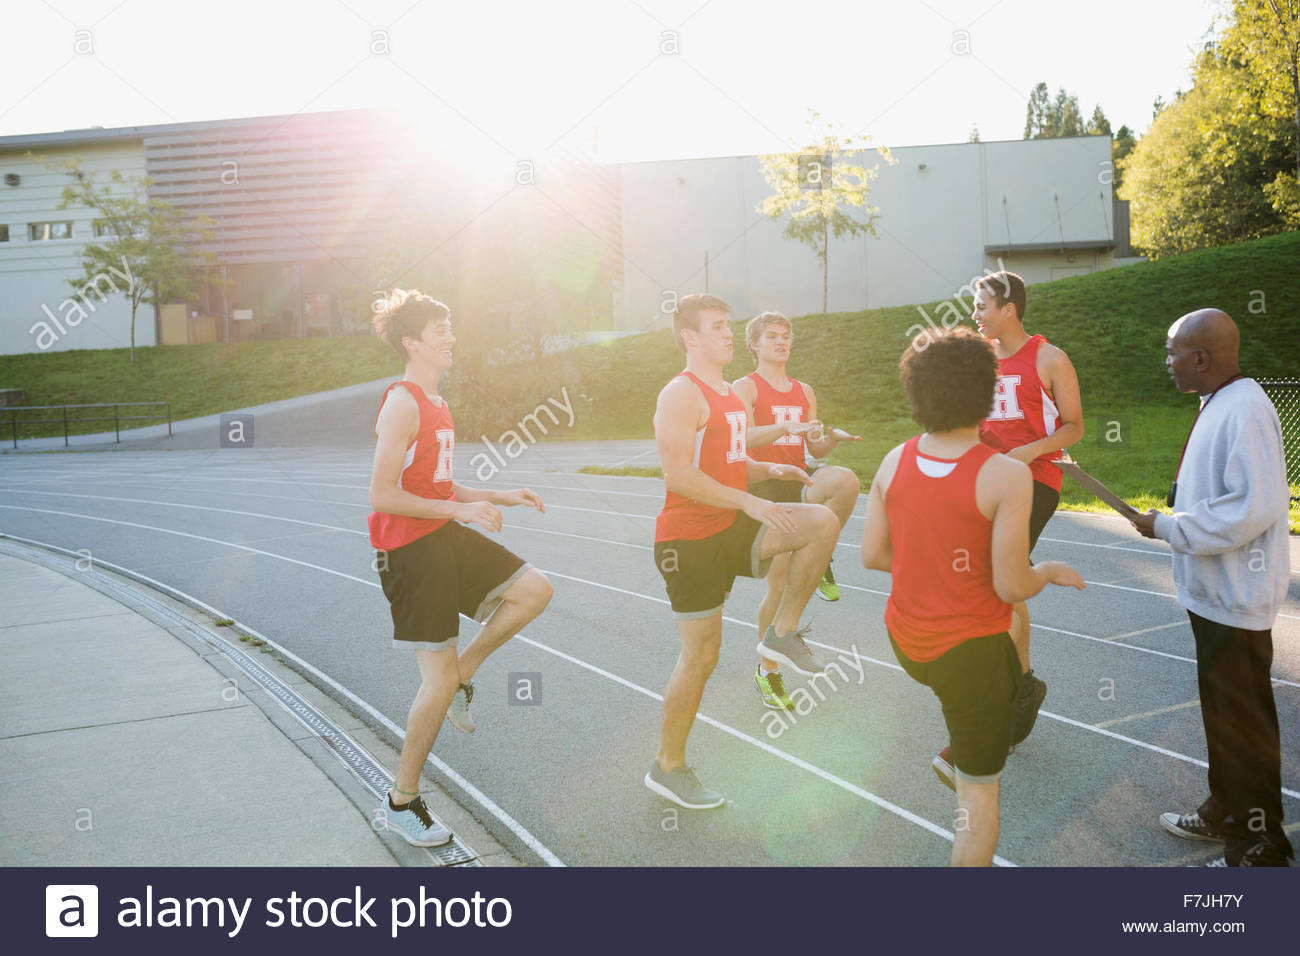 High school track and field team warming up - Stock Image